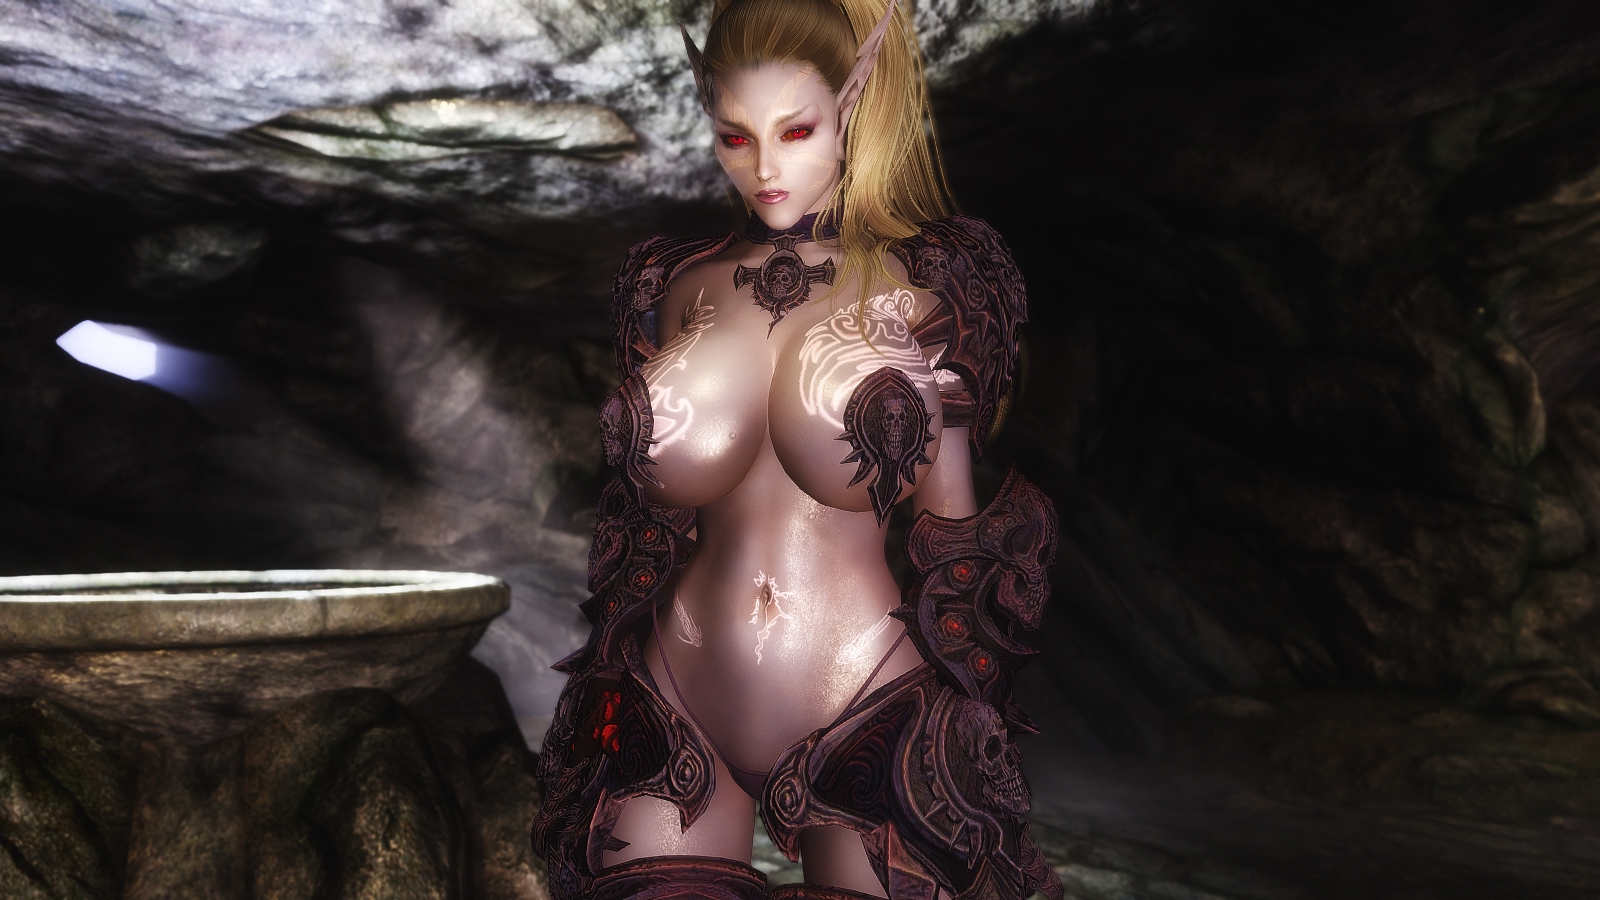 Hottest nude dark elves females hardcore photos